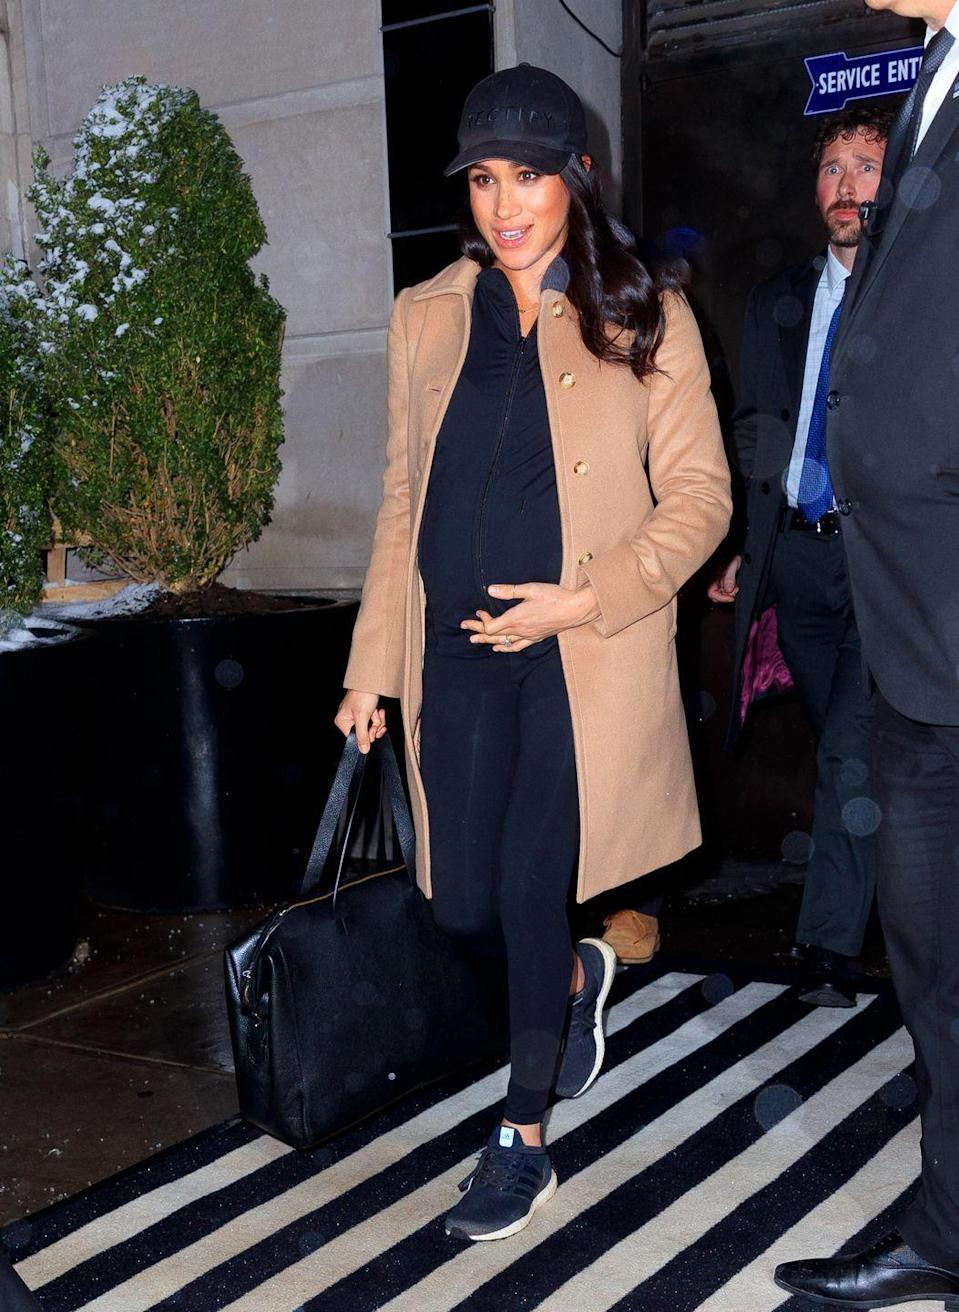 <p>Royals don't usually have baby showers (Kate didn't have one for any of her three children), but Meghan flew all the way to New York City for a gathering that her friends threw her to celebrate her future bb. Here she is trying to keep it low-key in athleisure.</p>